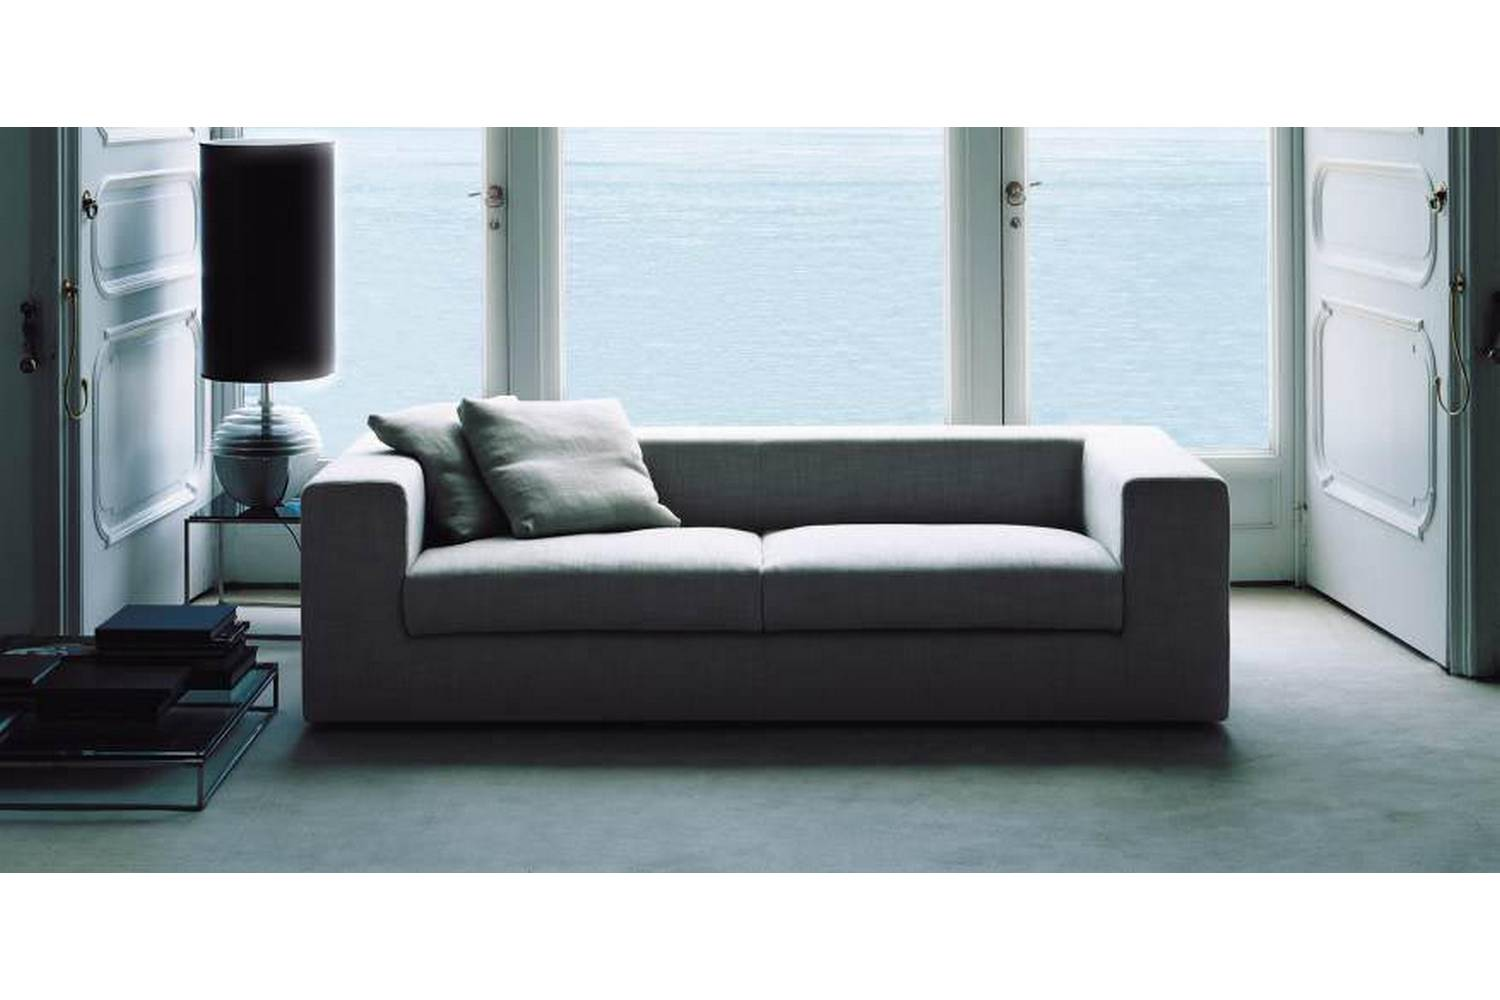 wall sofa lamps bed by piero lissoni for living divani space